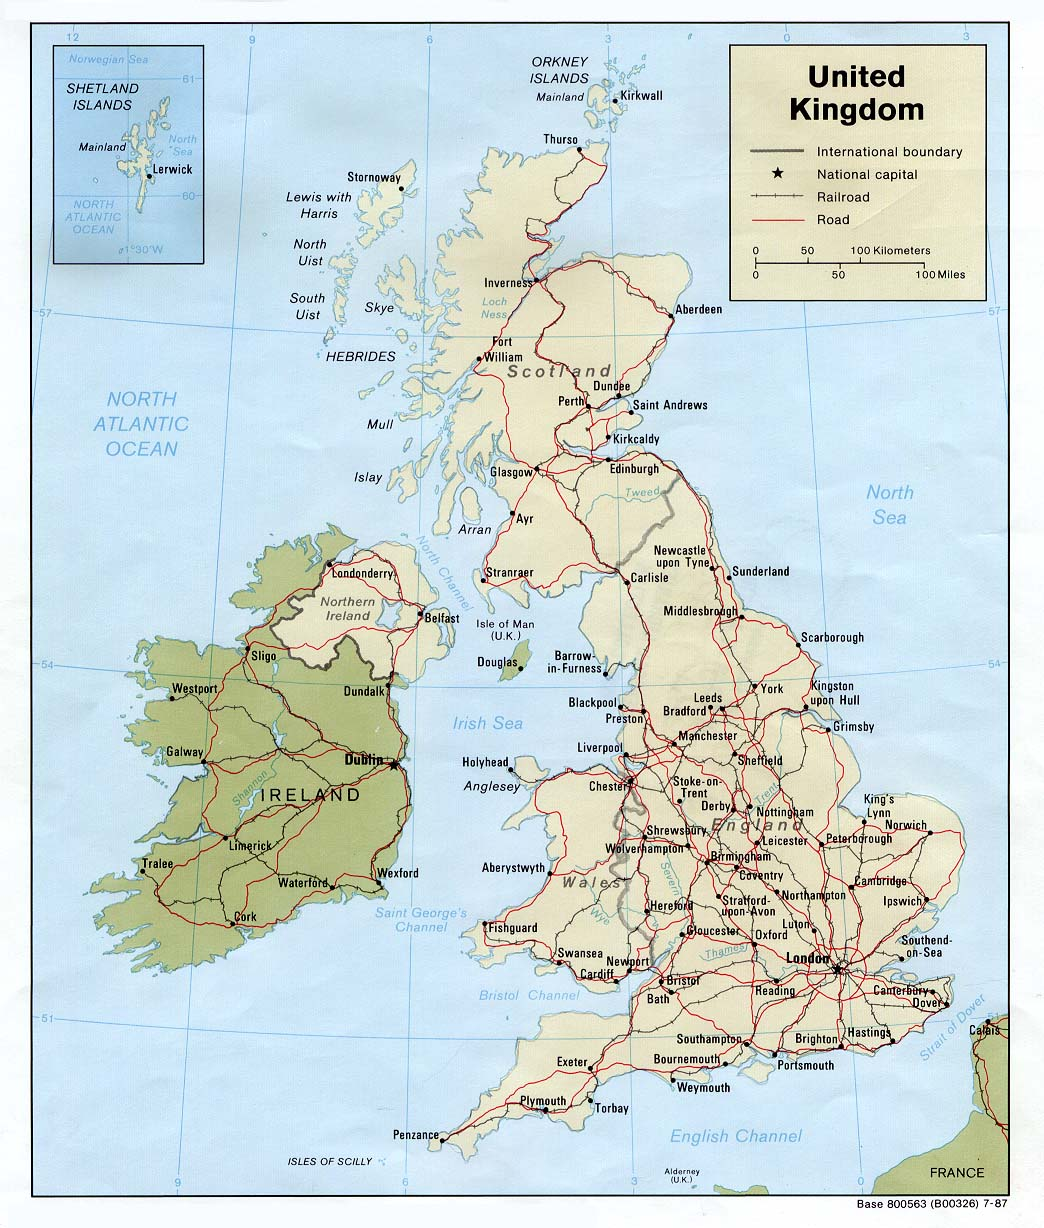 image about Printable Map of Uk and Ireland identify United Kingdom Maps - Perry-Castañeda Map Variety - UT